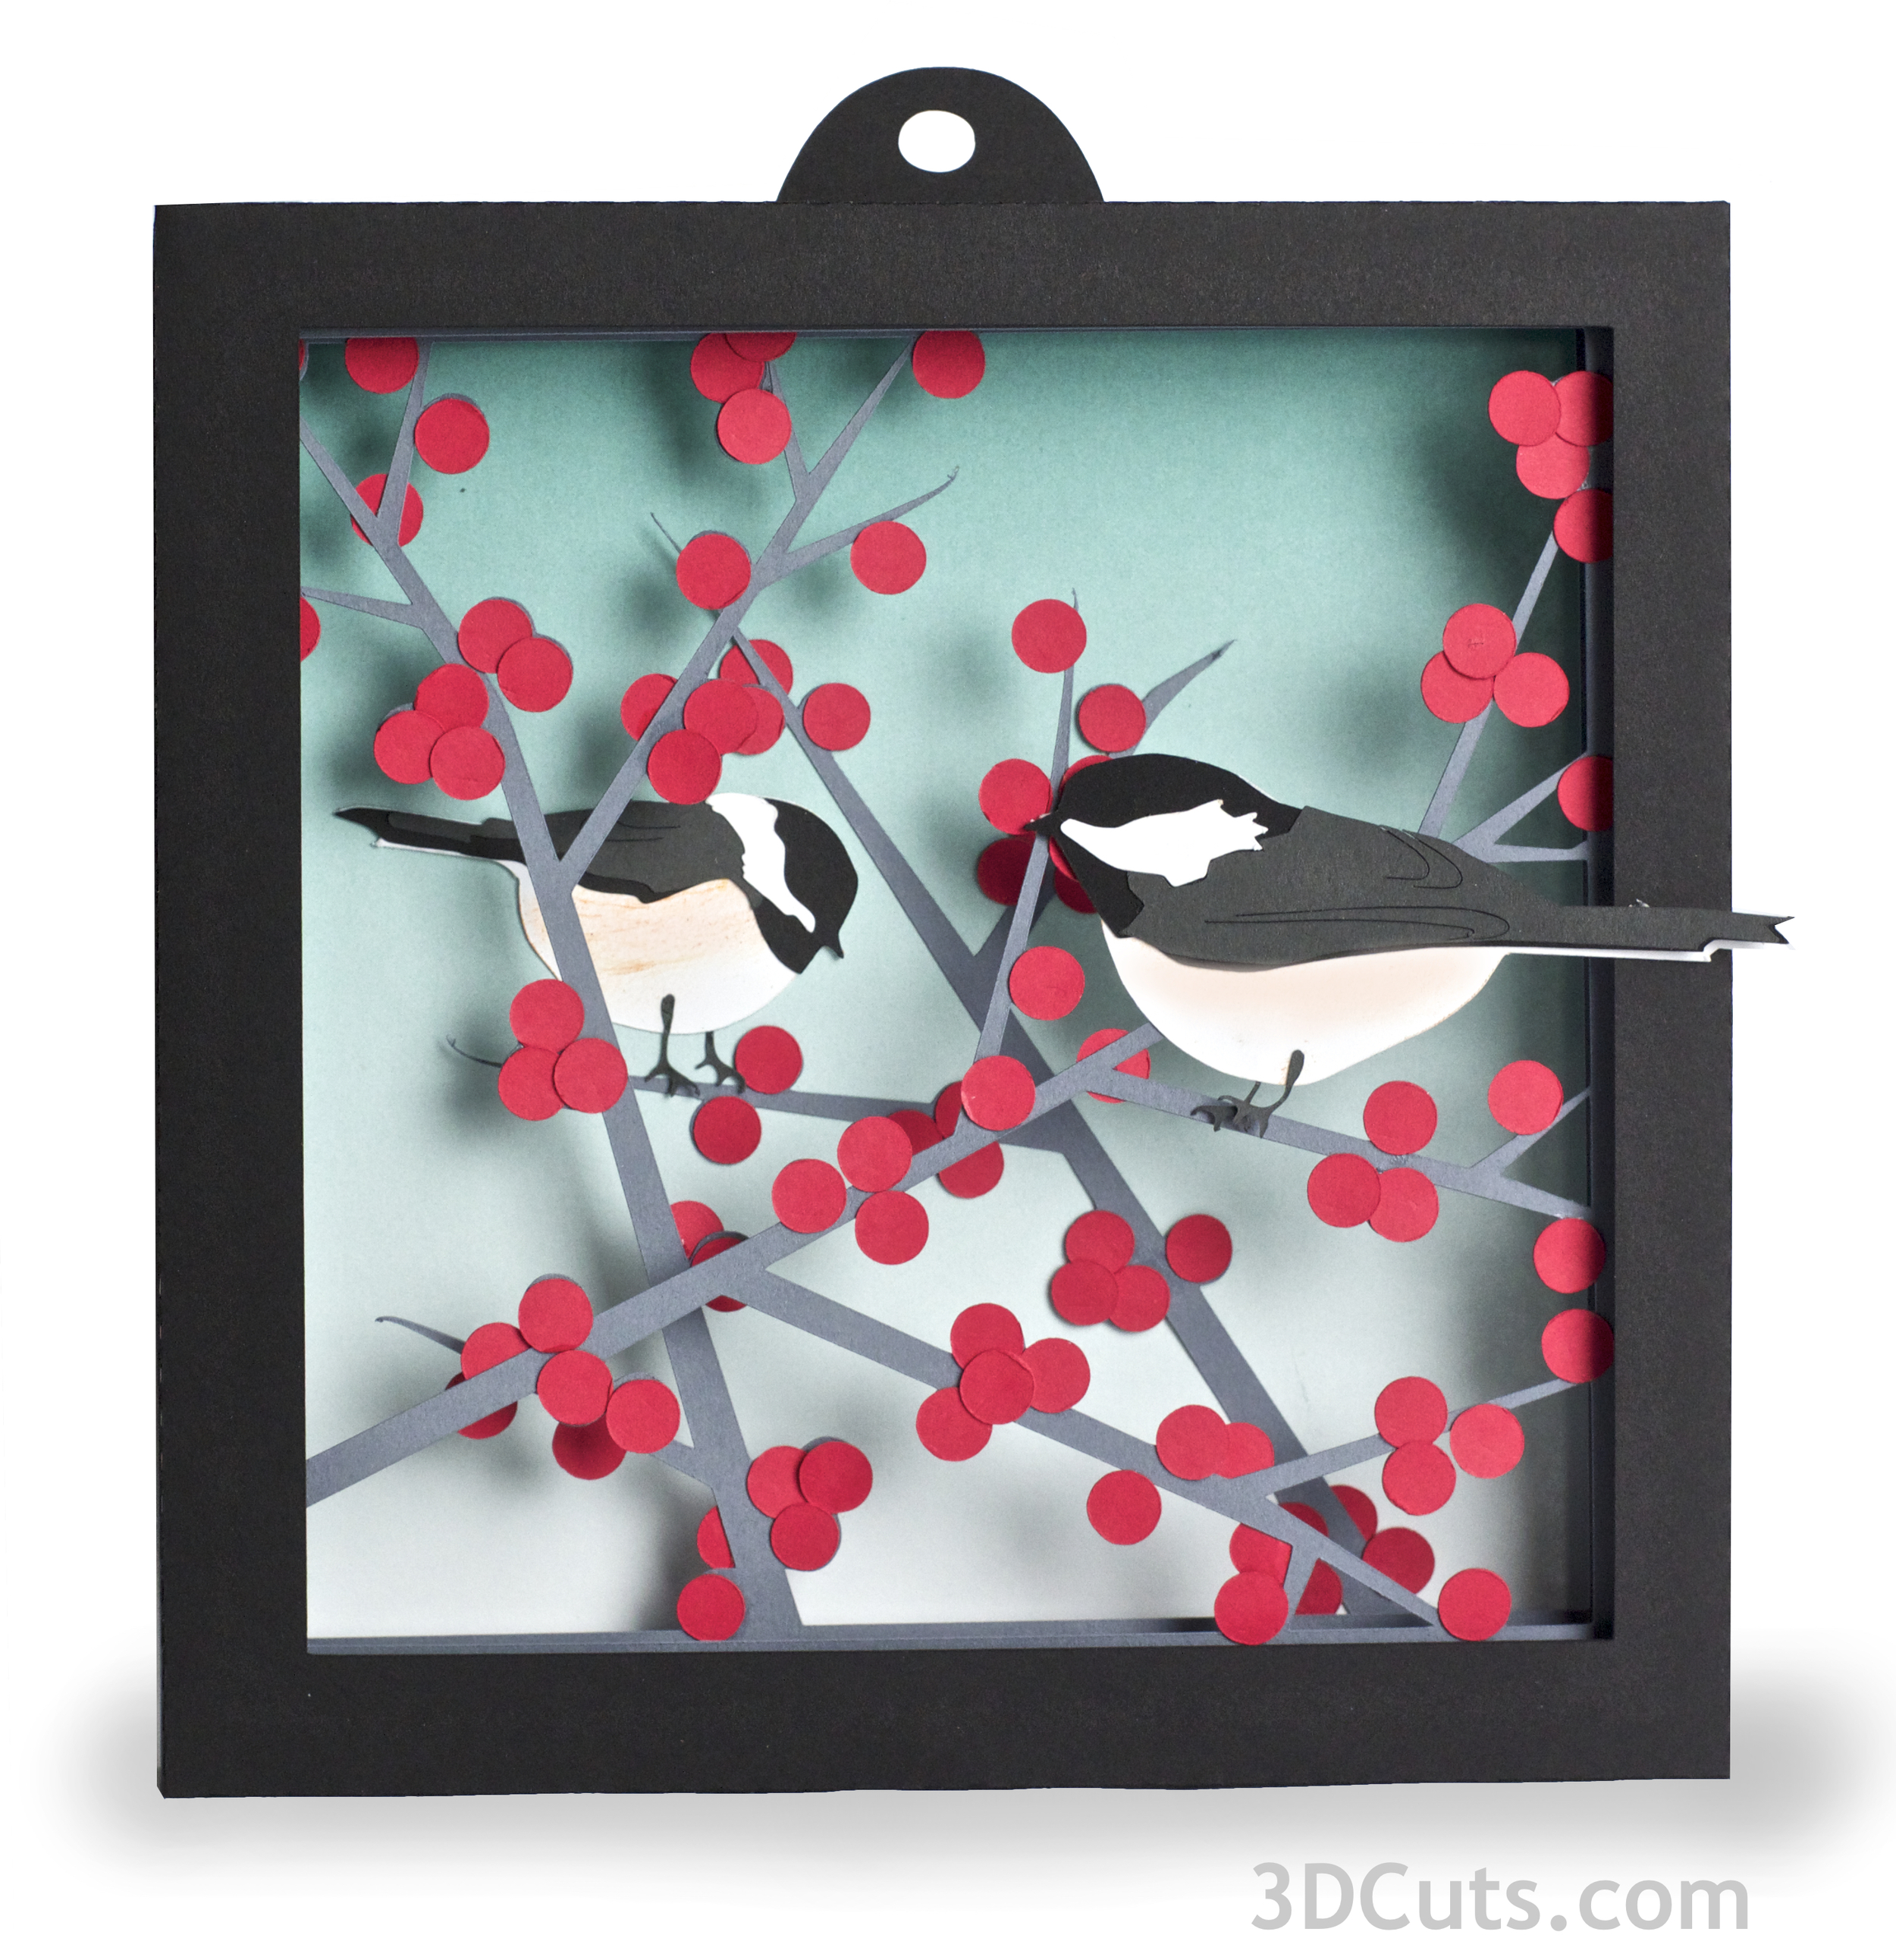 Winterberry and Chickadee Shadow box in paper by Marji Roy of 3dcuts.corm. Cutting files in svg, pdf, and dxf formats for Silhouette and Cricut cutting machines